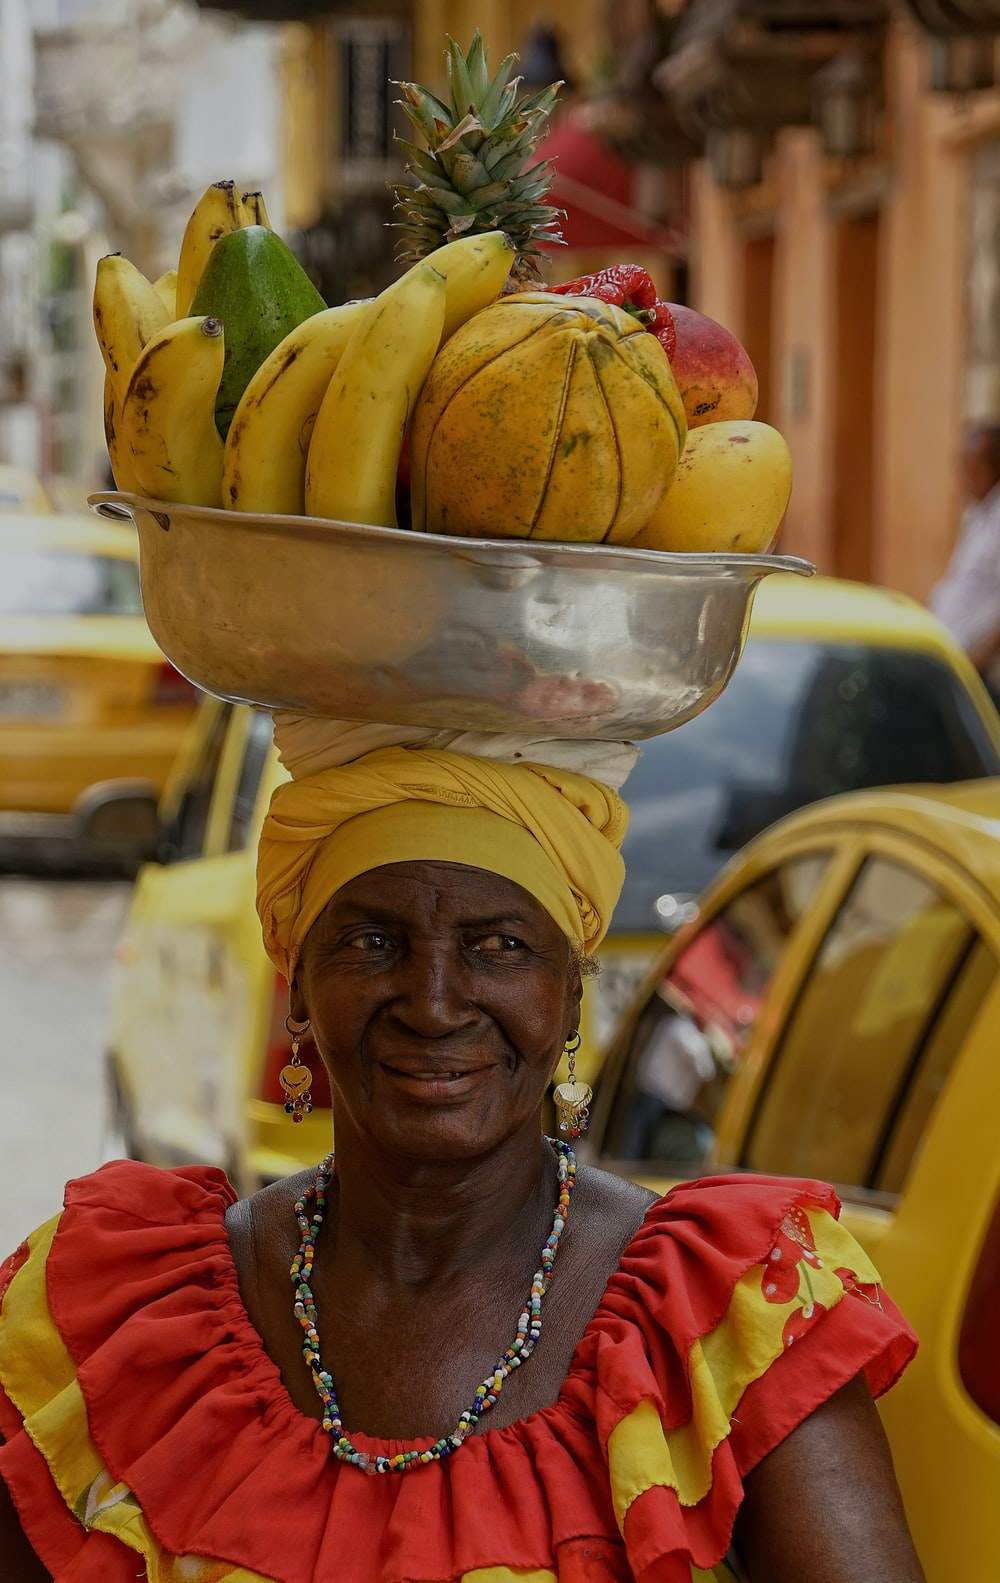 woman carrying fruits in bowl